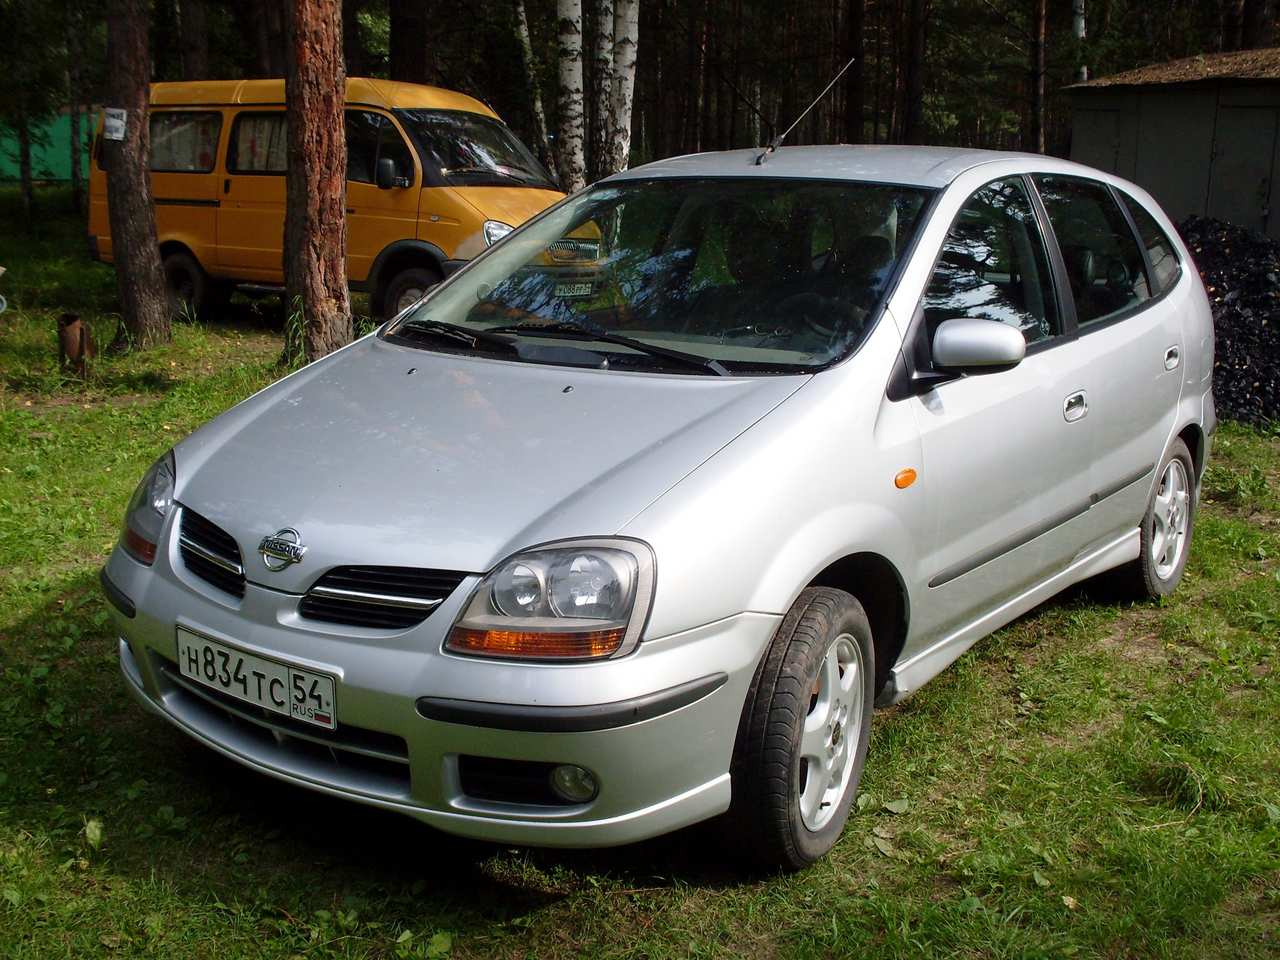 2002 nissan almera pictures 2000cc gasoline ff automatic for sale. Black Bedroom Furniture Sets. Home Design Ideas